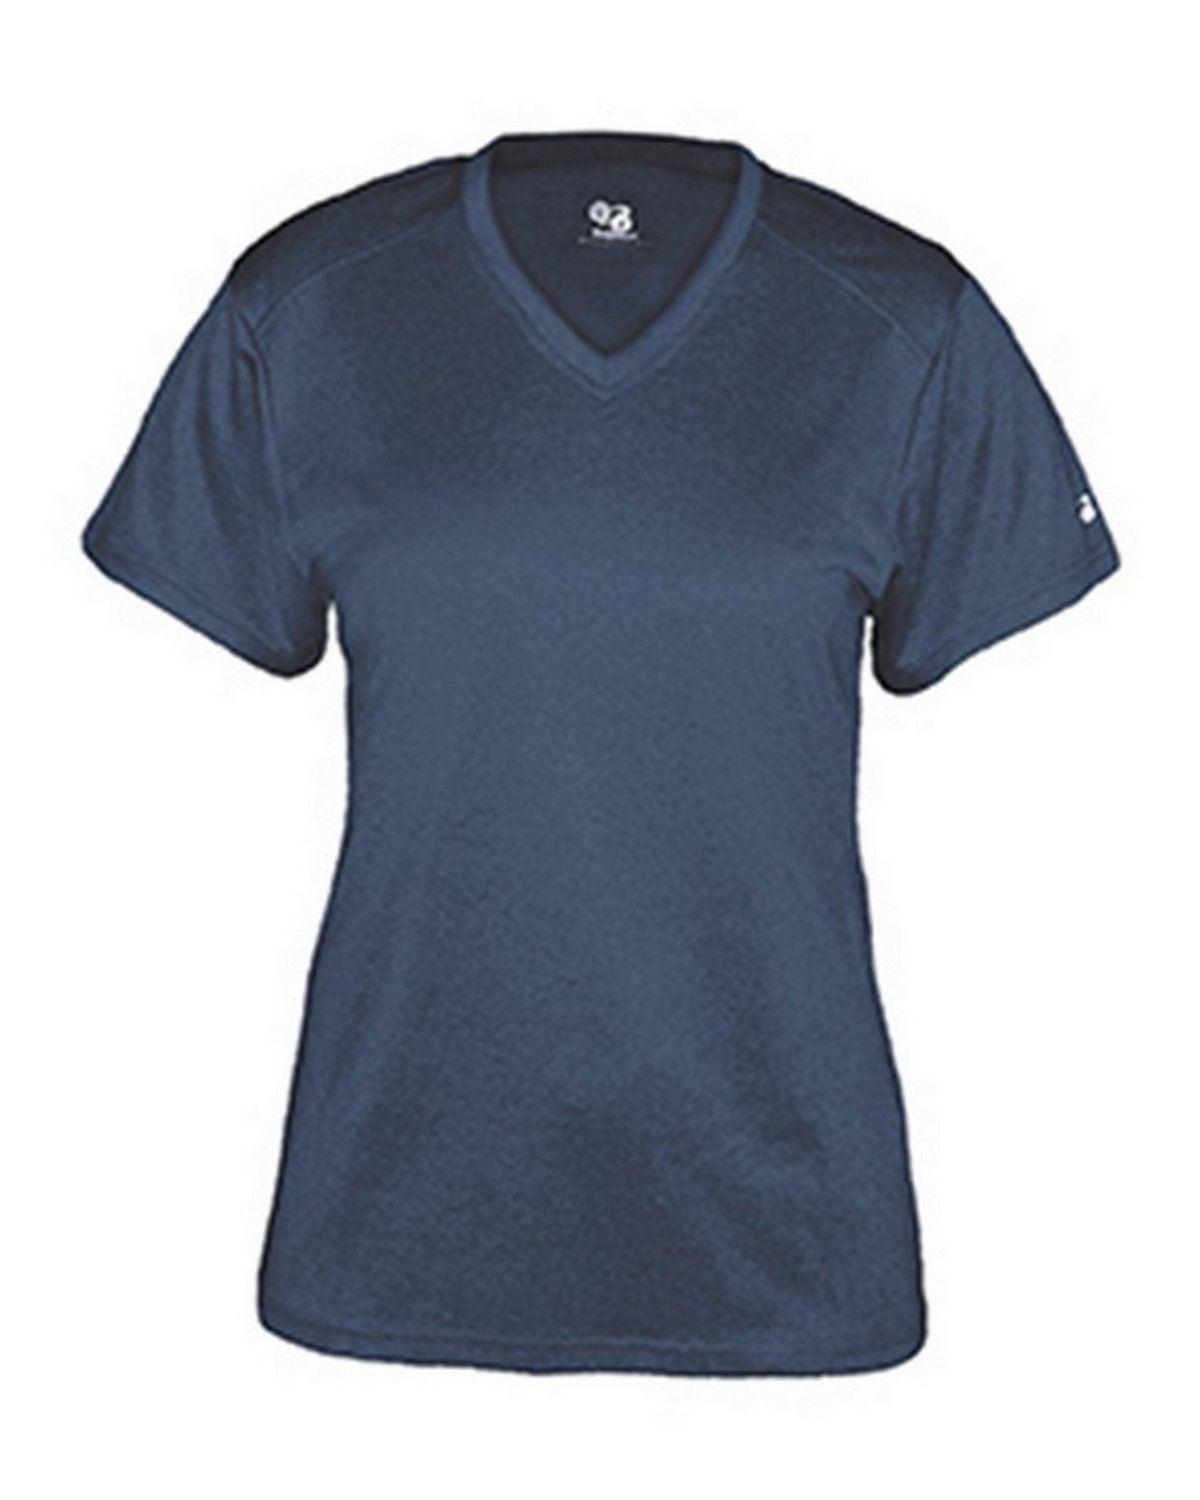 Badger BD4362 Ladies V-Neck Tee - Navy - 2X BD4362